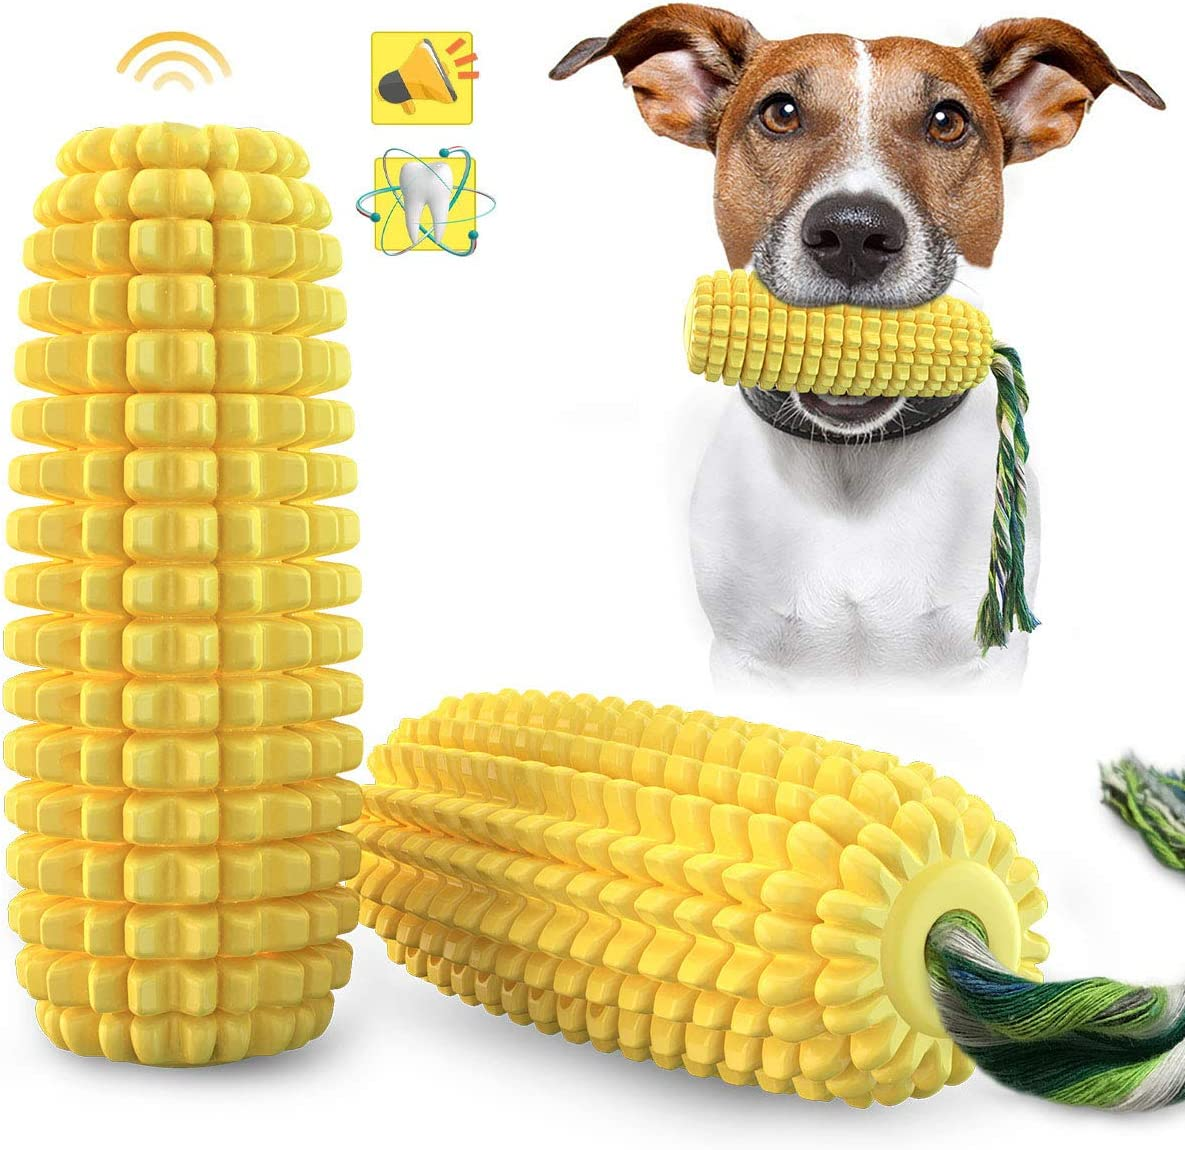 Dog Talking Toothbrush Ranking TOP11 Chew Toy Chewer Breed for Aggressive Sque Regular store